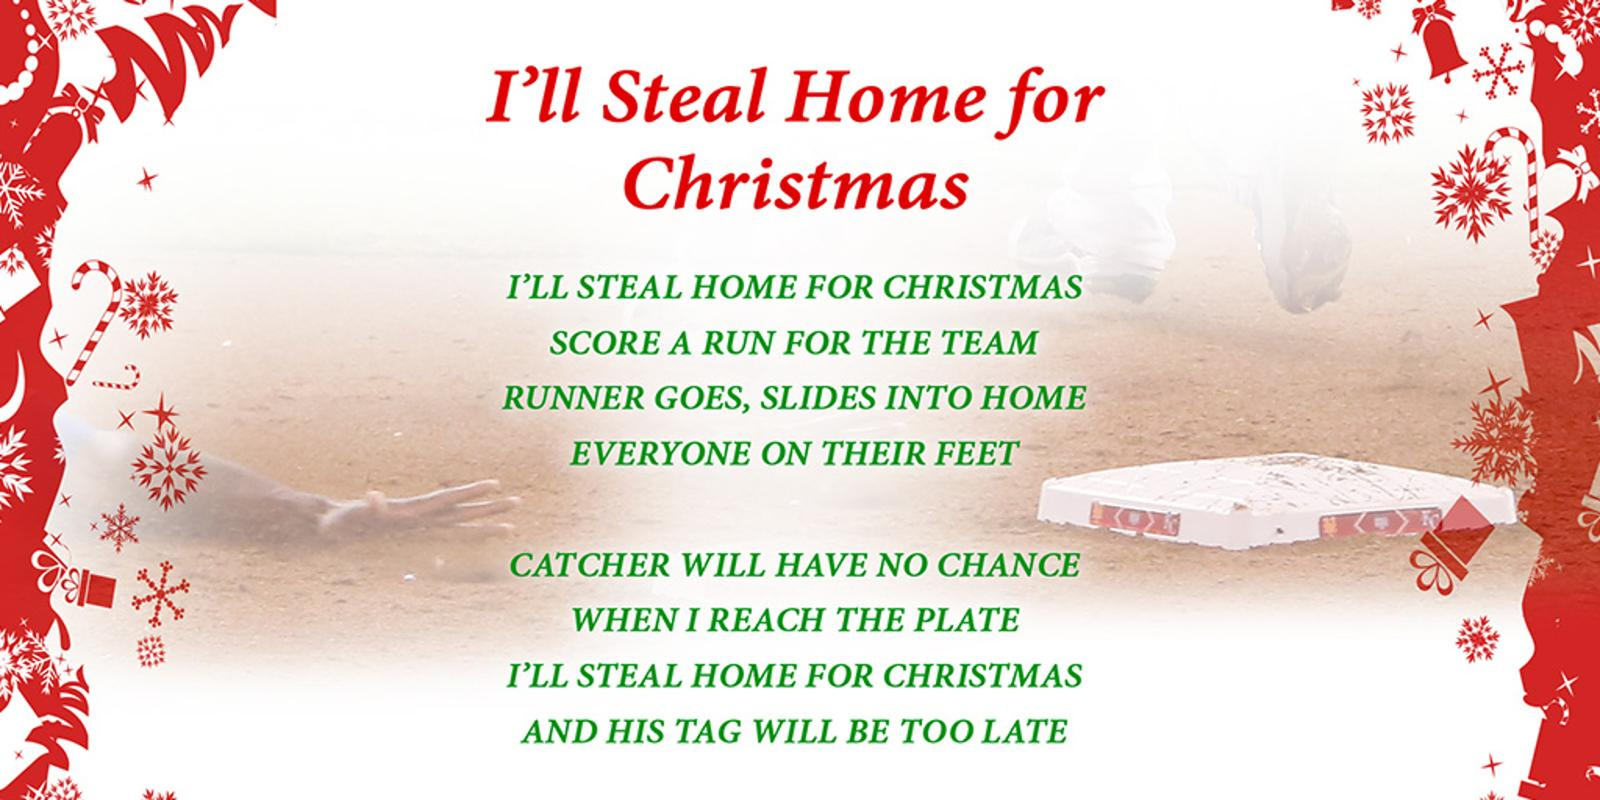 It's time to spread holiday cheer door-to-door with these baseball ...